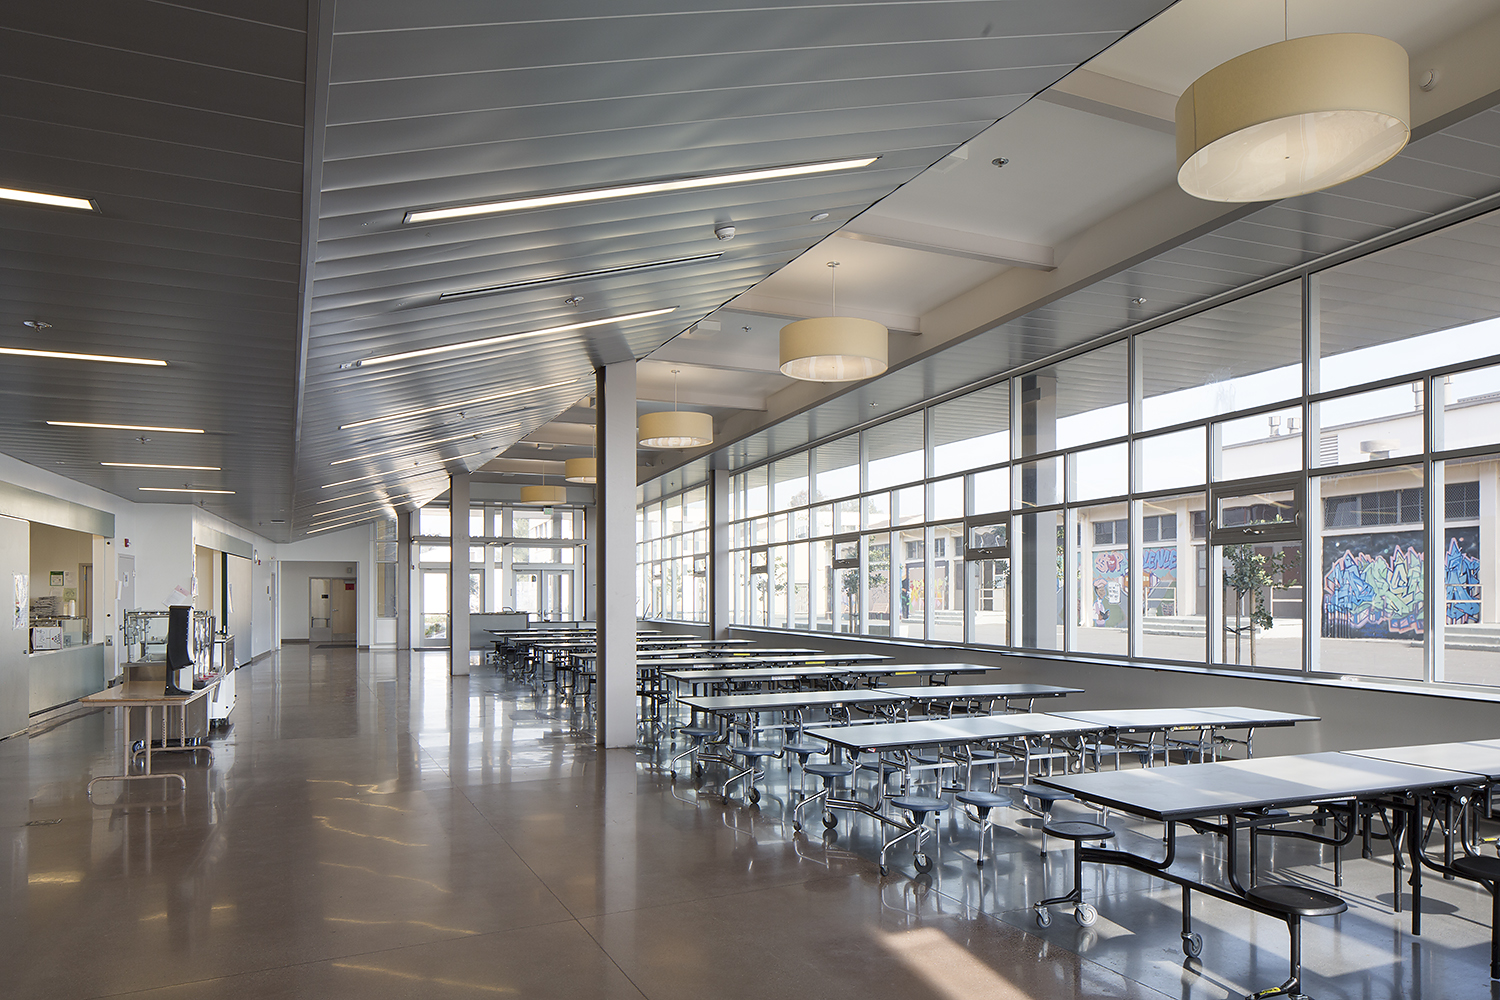 Havenscourt Middle School Cafeteria